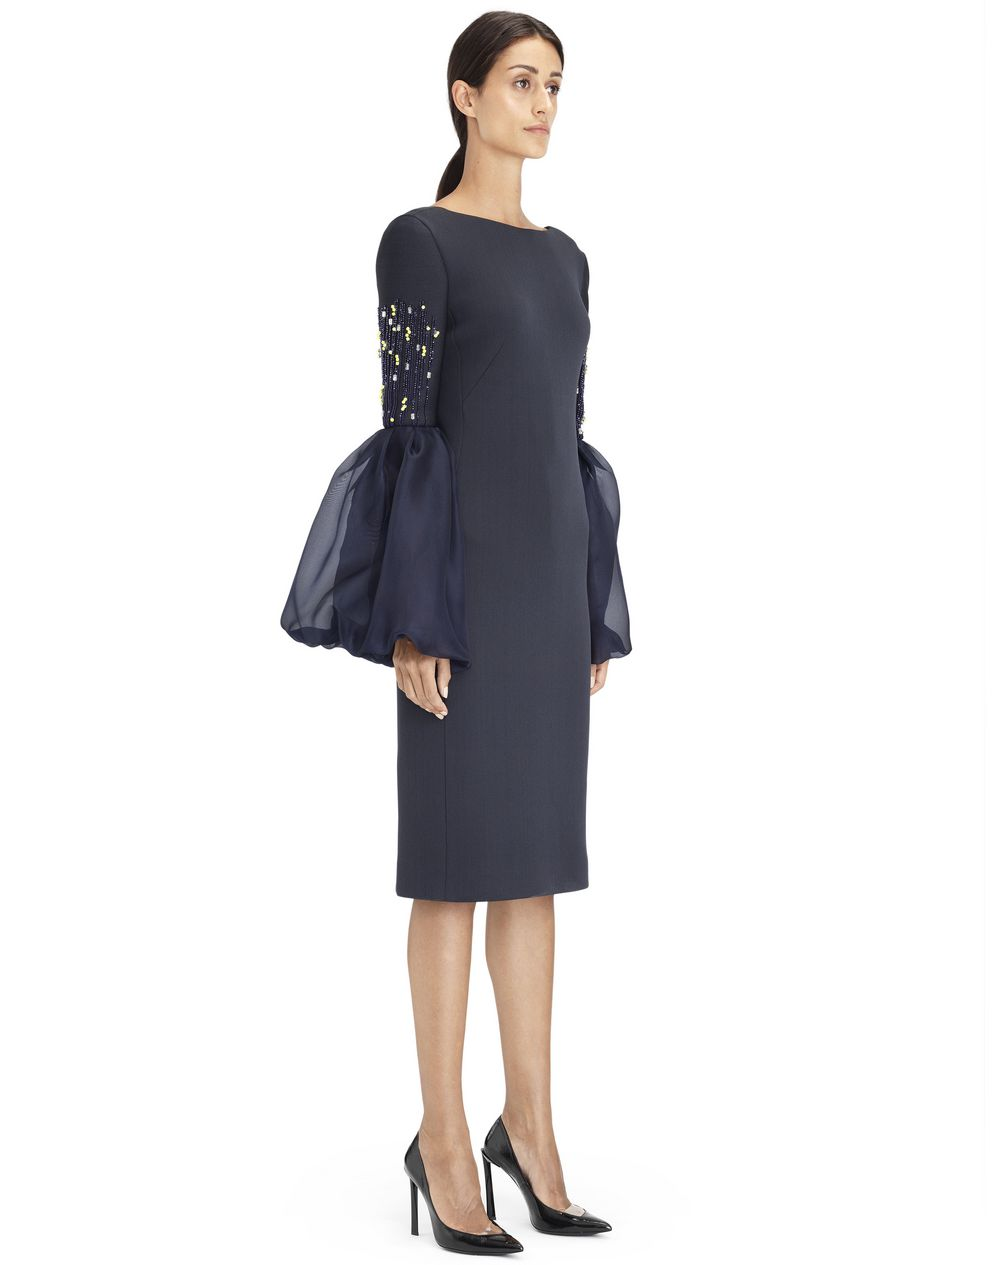 EMBROIDERED SILK NEOPRENE DRESS - Lanvin